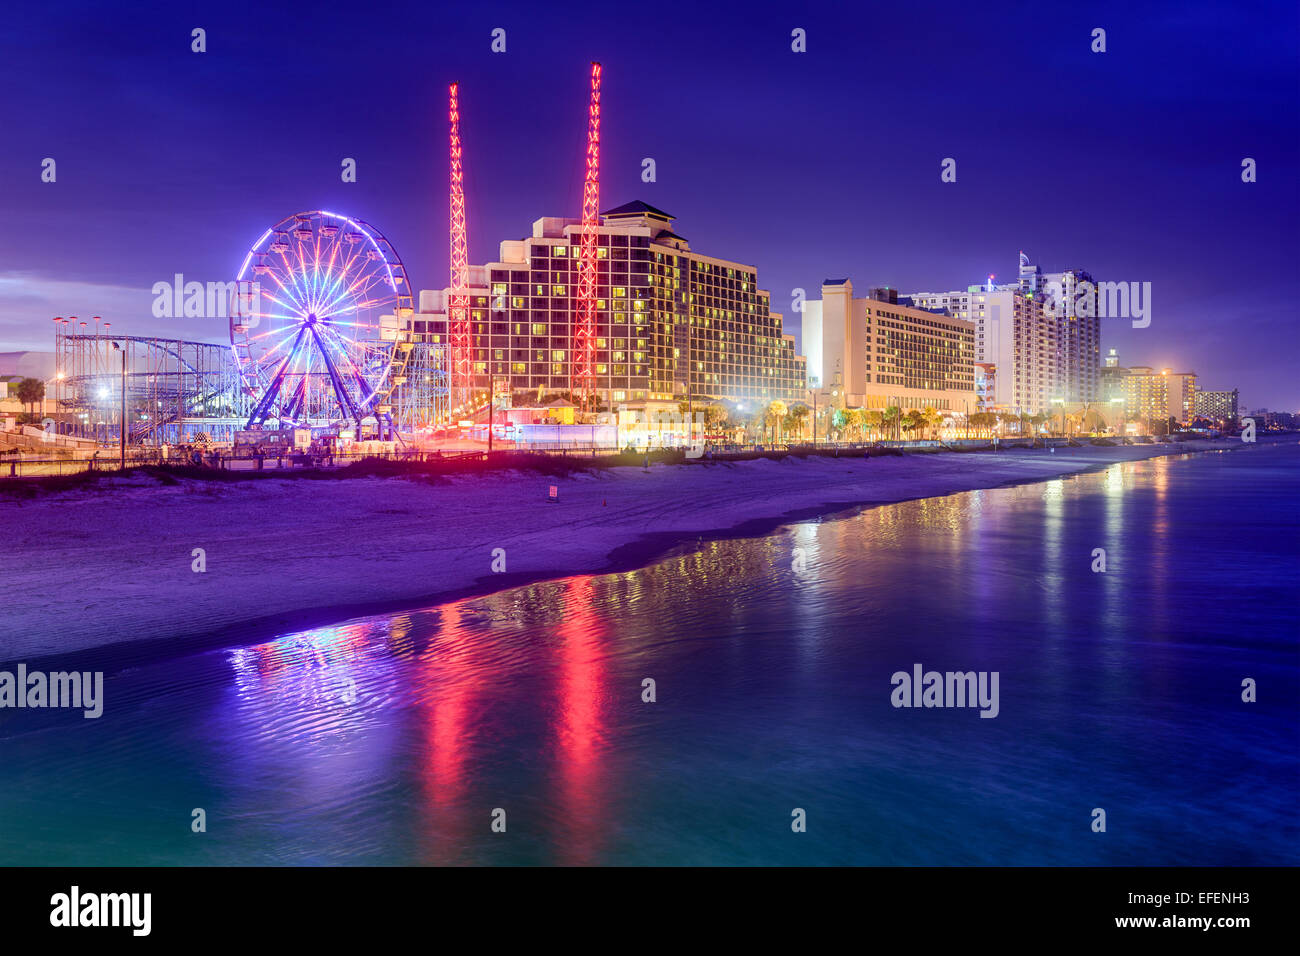 Daytona Beach, Florida, USA beachfront skyline at night. - Stock Image